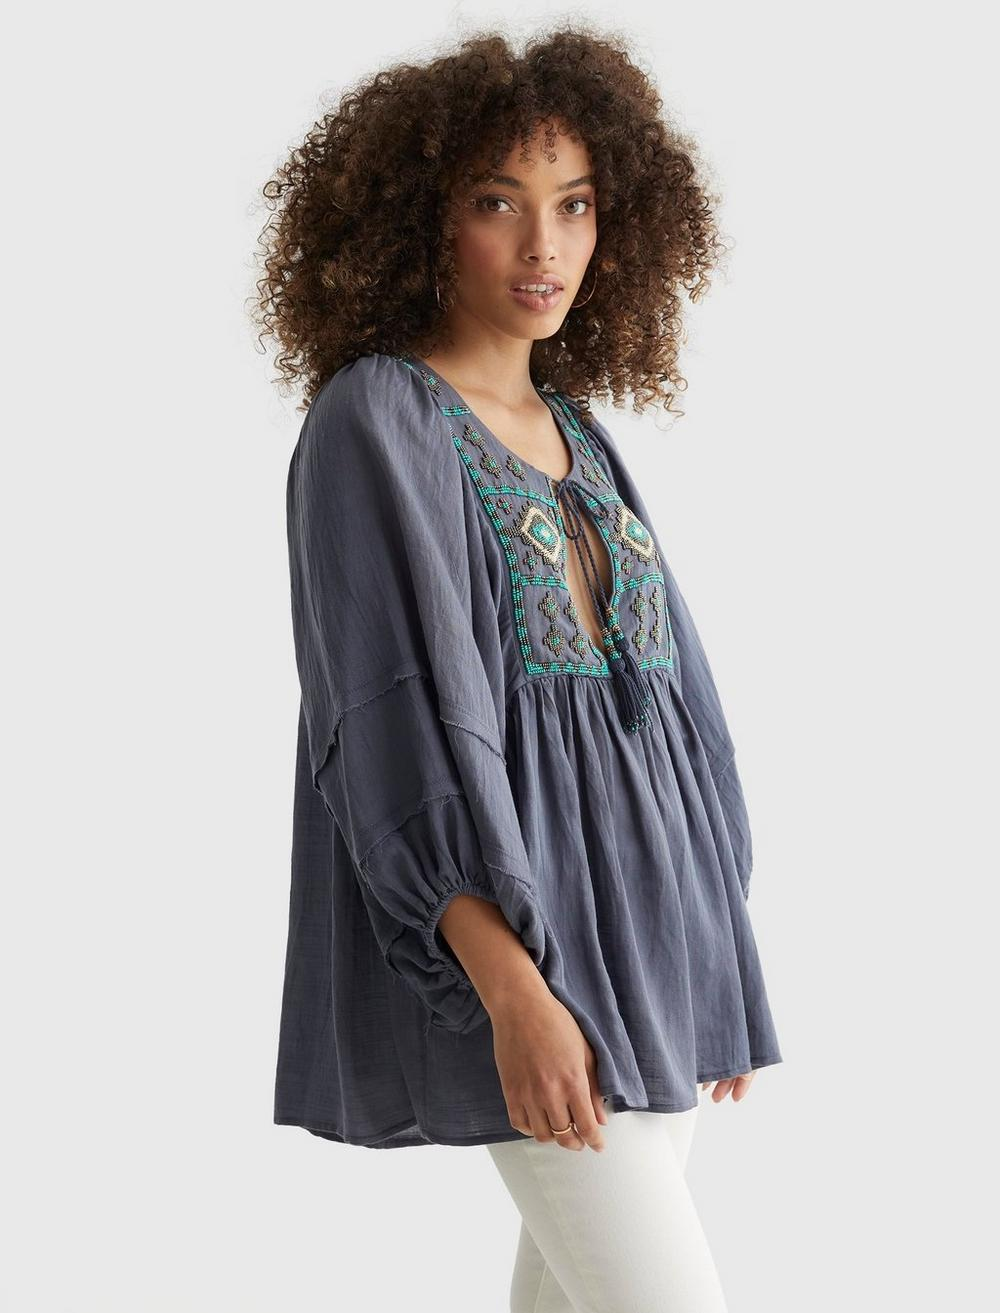 LIMITED EDITION BEADED TIE PEASANT TOP, image 3